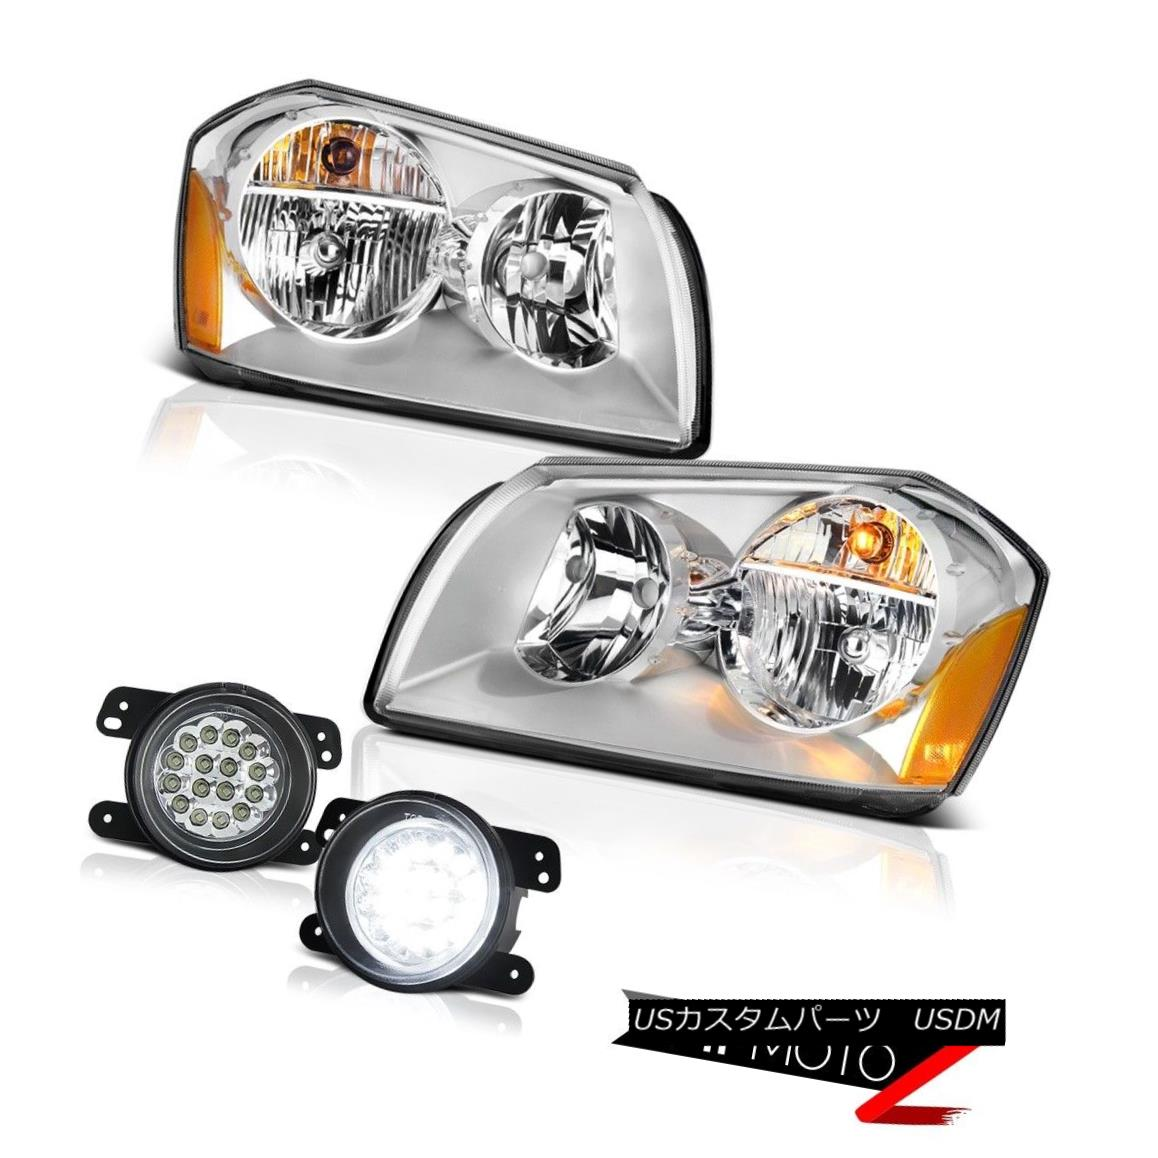 ヘッドライト 05 06 07 Dodge Magnum Se Clear Chrome Fog Lamps Headlights SMD DRL Replacement 05 06 07 Dodge Magnum SeクリアクロームフォグランプヘッドライトSMD DRL交換